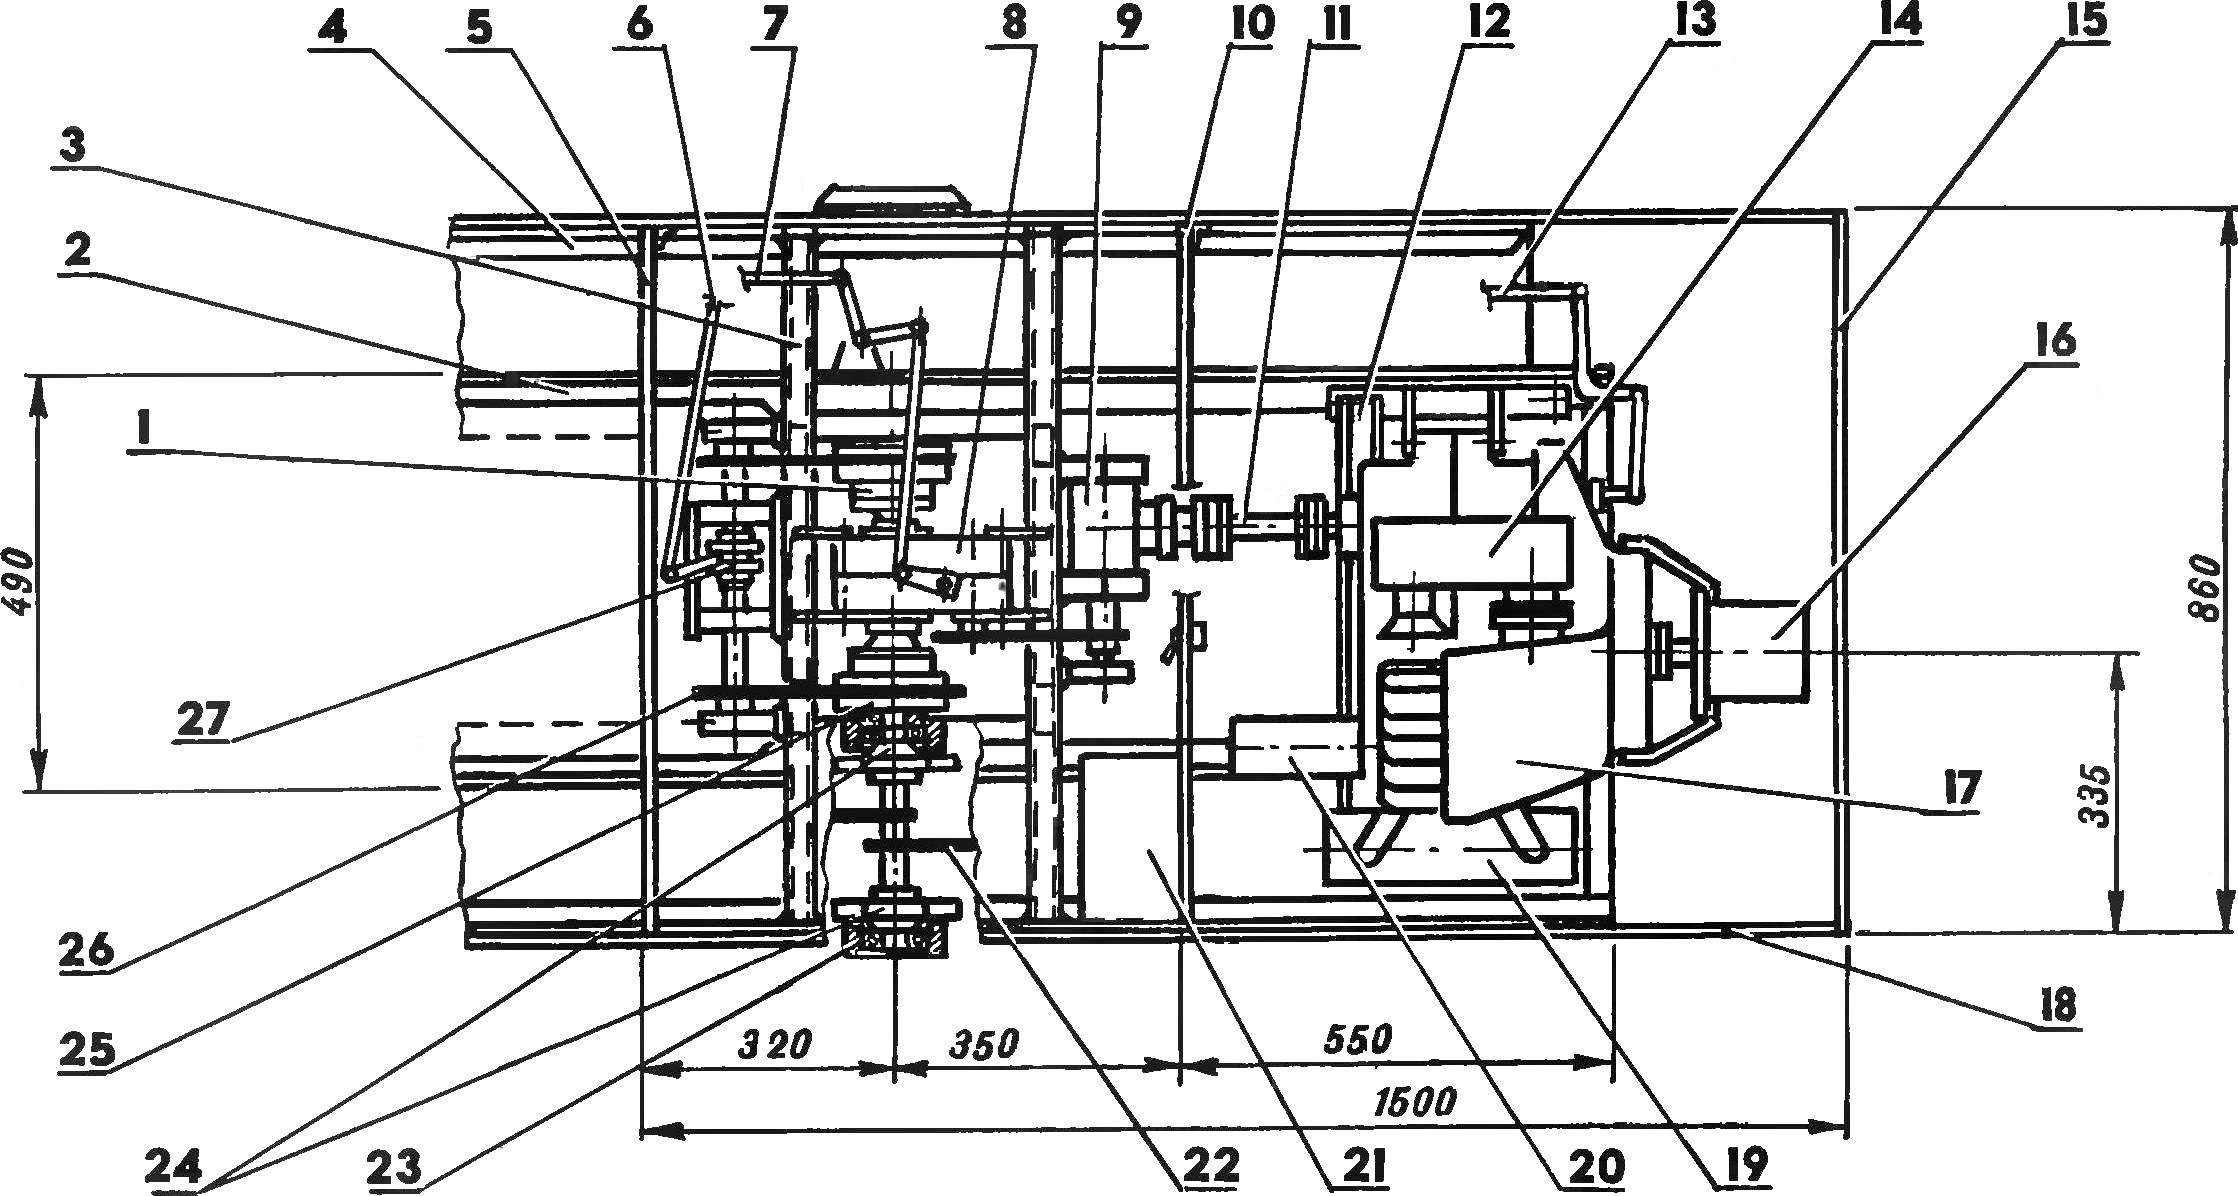 Fig. 6. The engine and transmission.